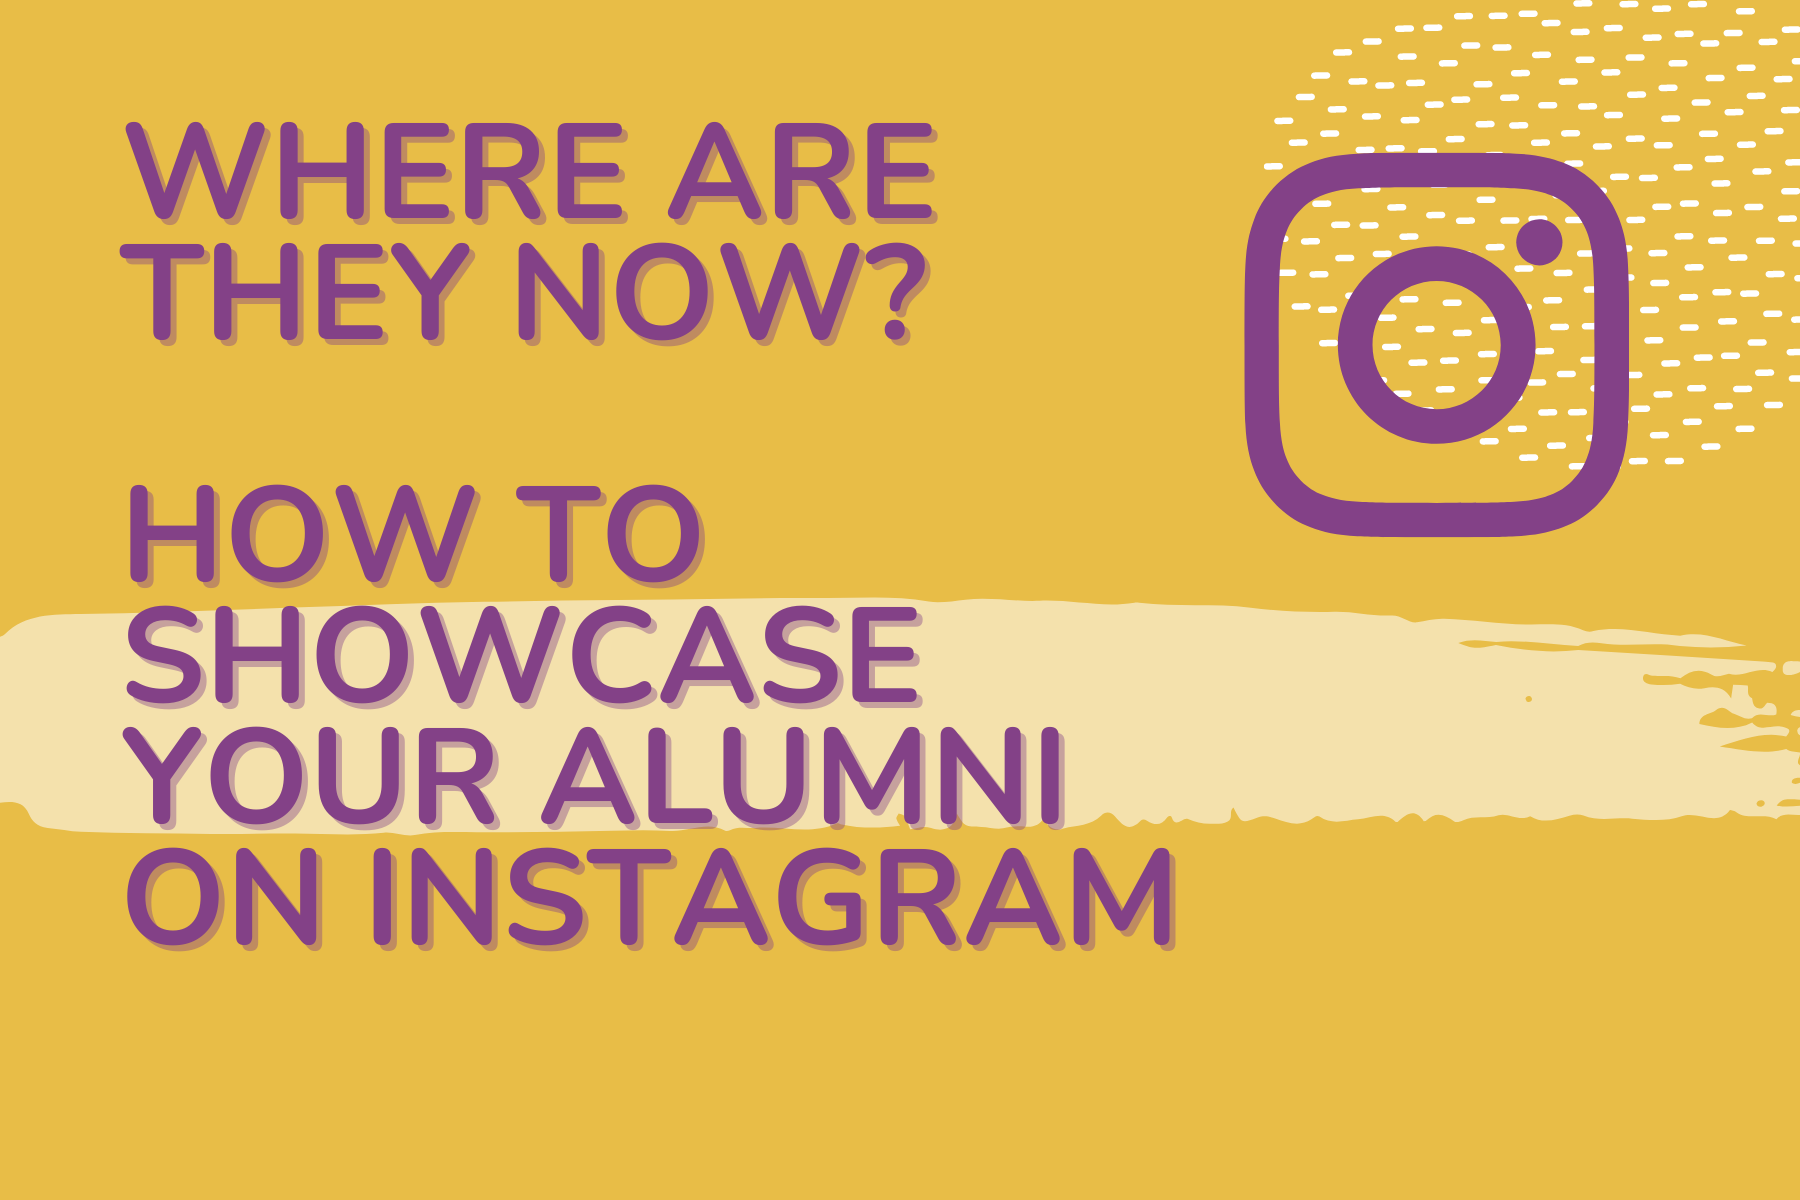 Where are they now? How to showcase your Alumni on Instagram